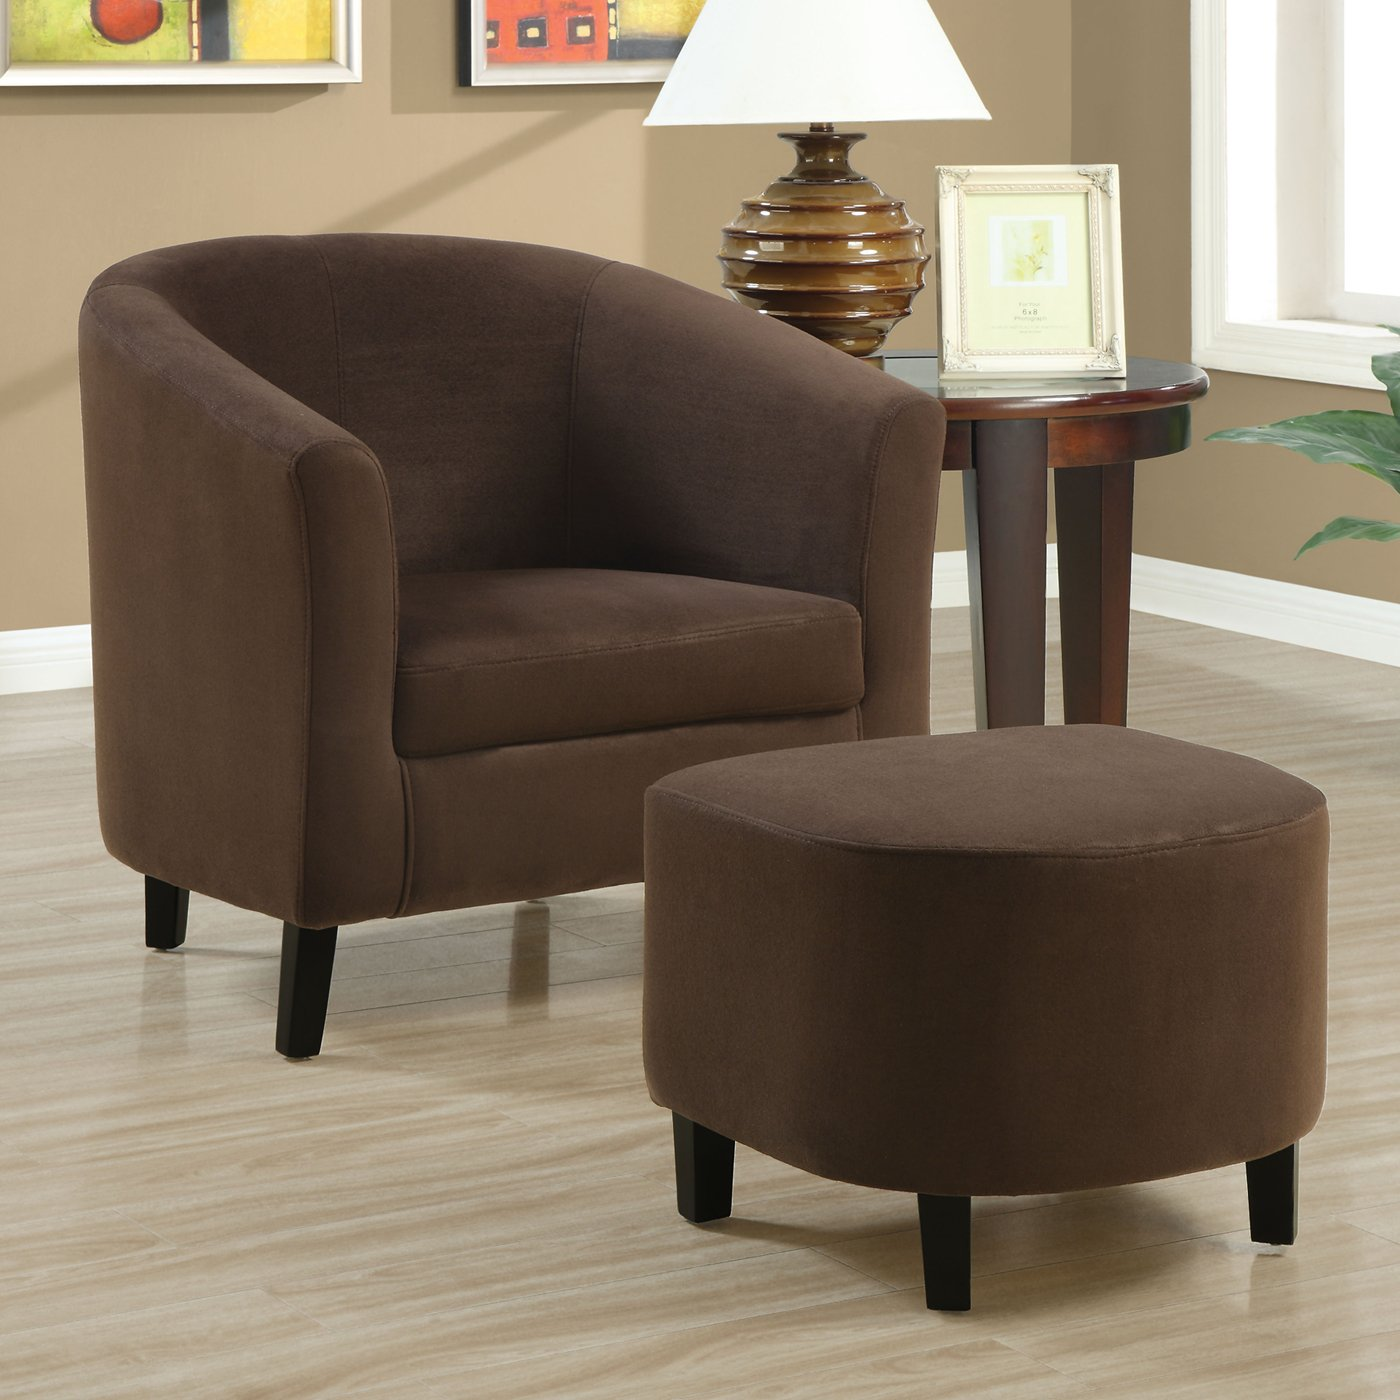 Cute Accent Chair For Home Furniture Ideas With Accent Chairs With Arms And Accent Chairs For Living Room